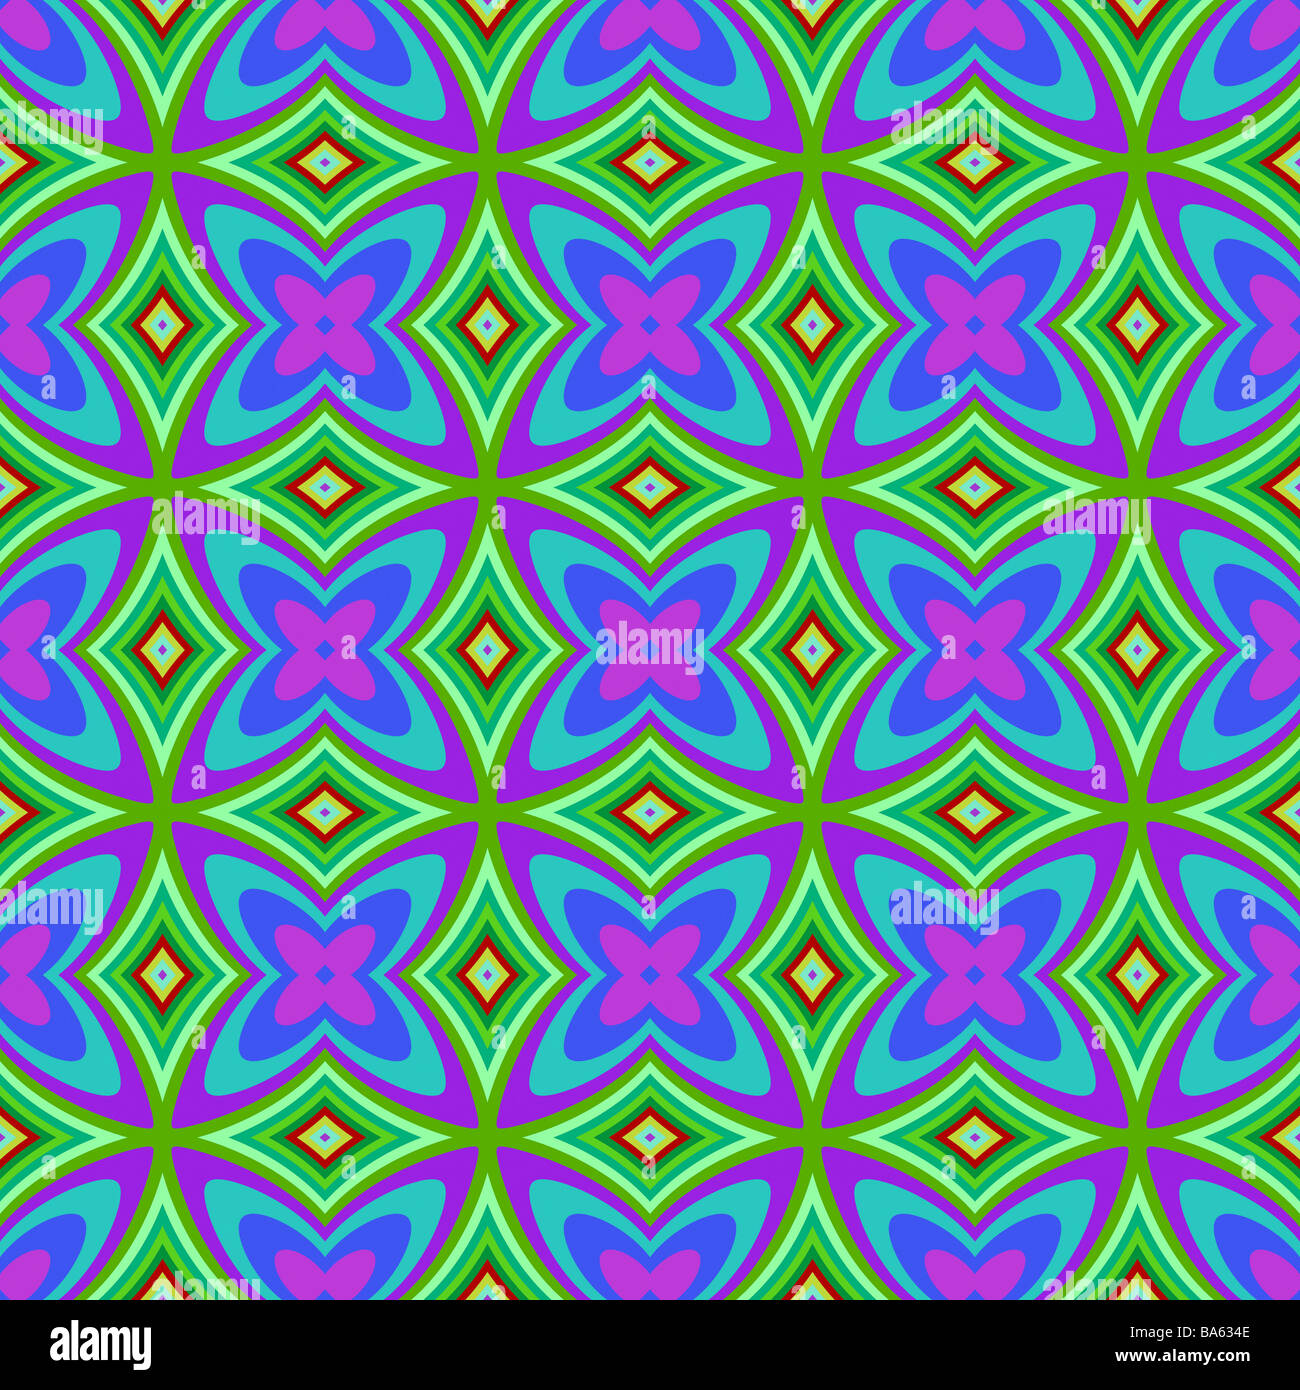 Free Colorful Geometric Wallpaper: Colorful Abstract Retro Patterns Geometric Design